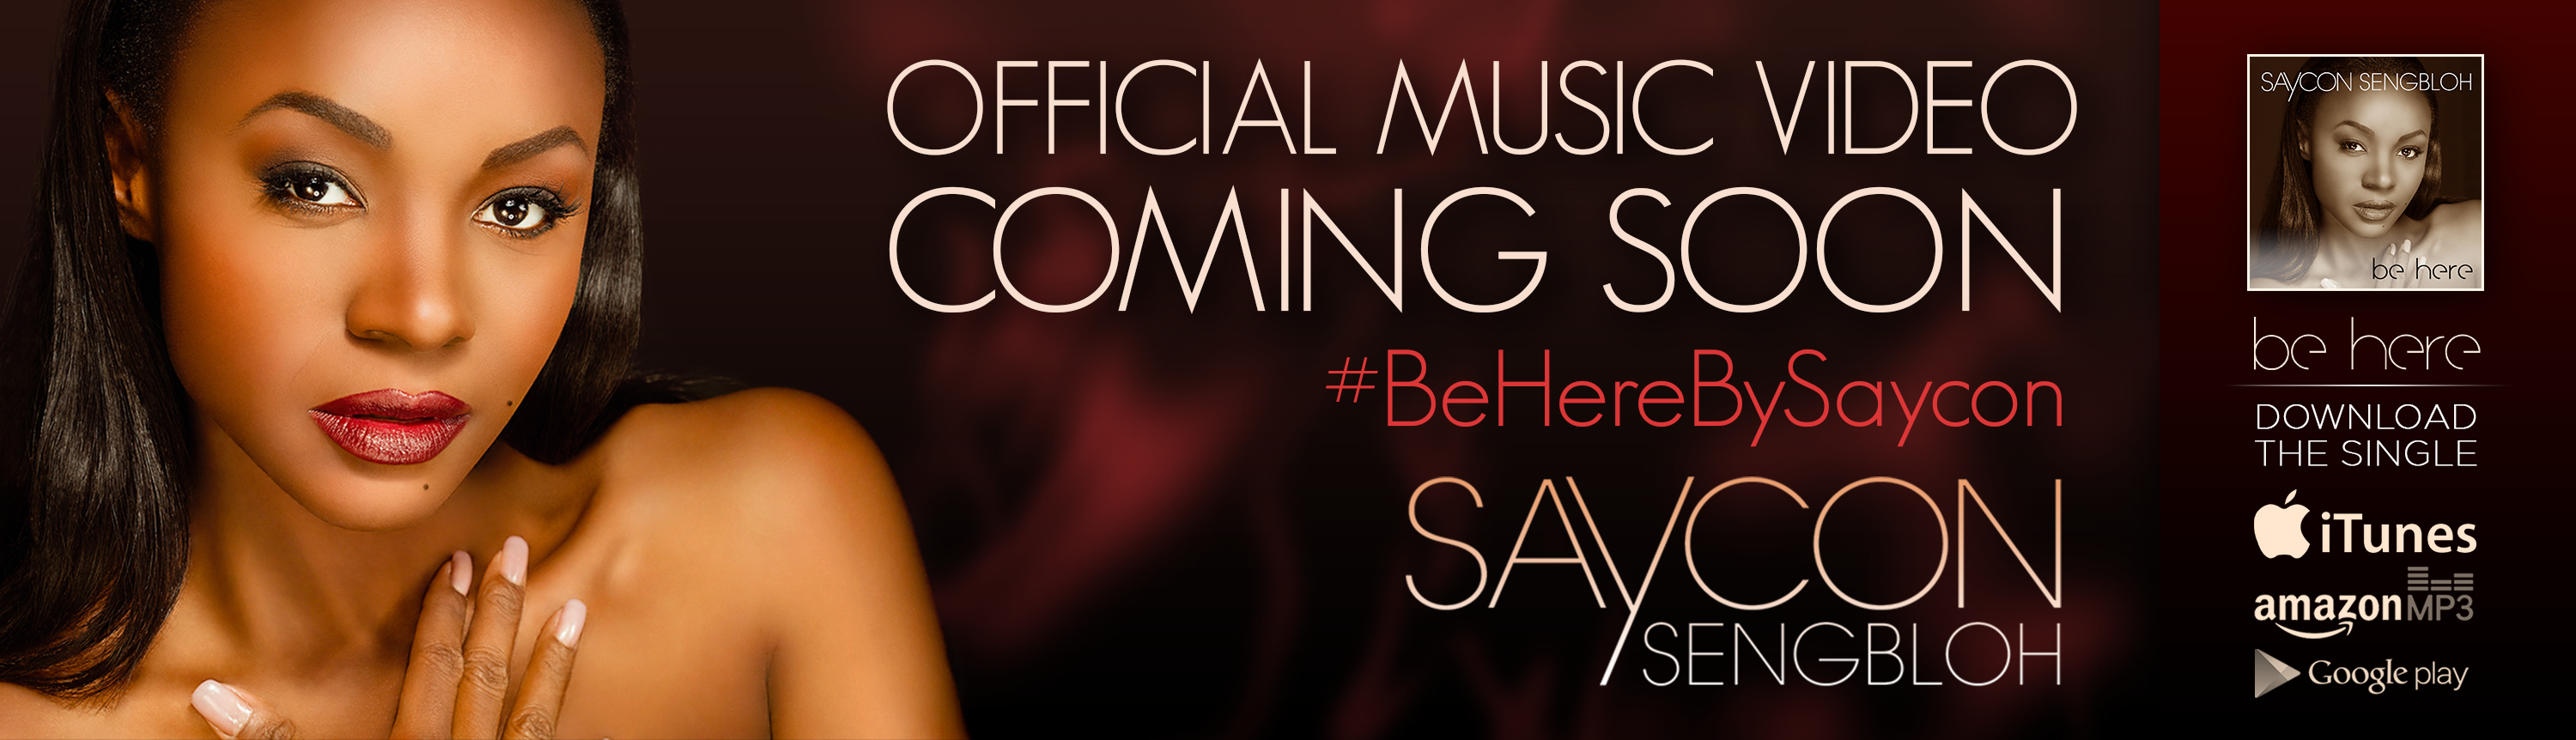 New BE HERE Music Video Coming Soon!